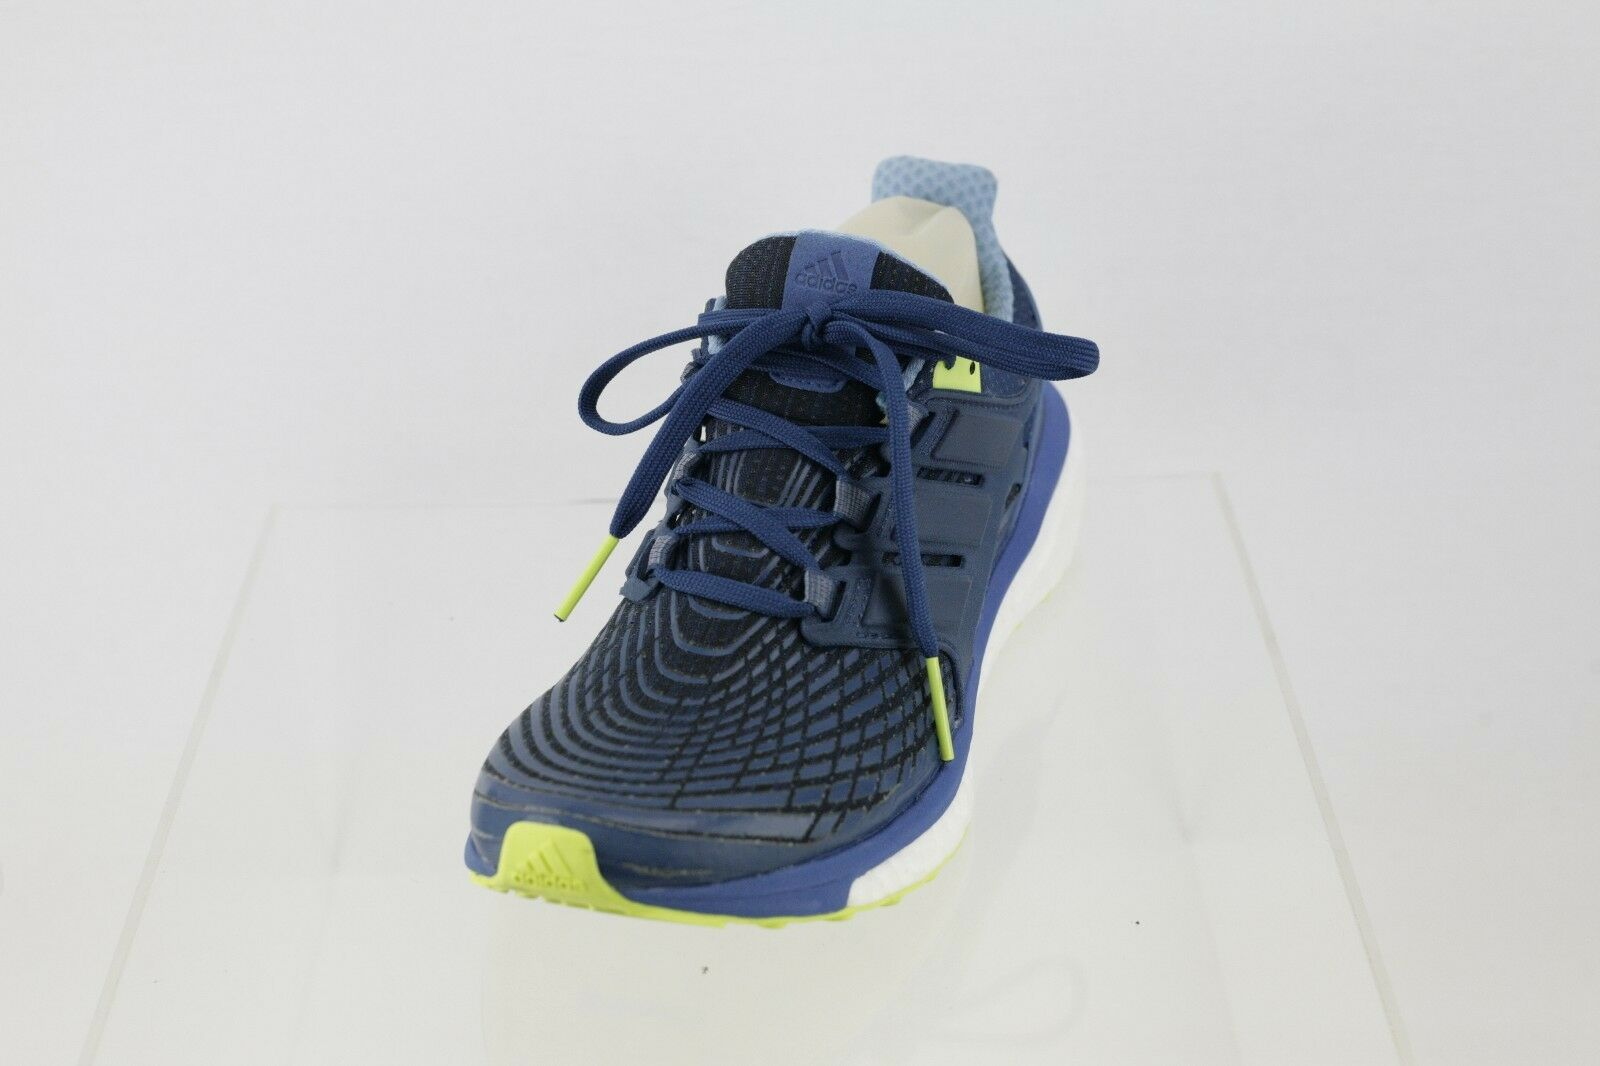 Men's Adidas Energy Boost CG3358 Navy bluee Lace-up Running shoes Size 7.5 M